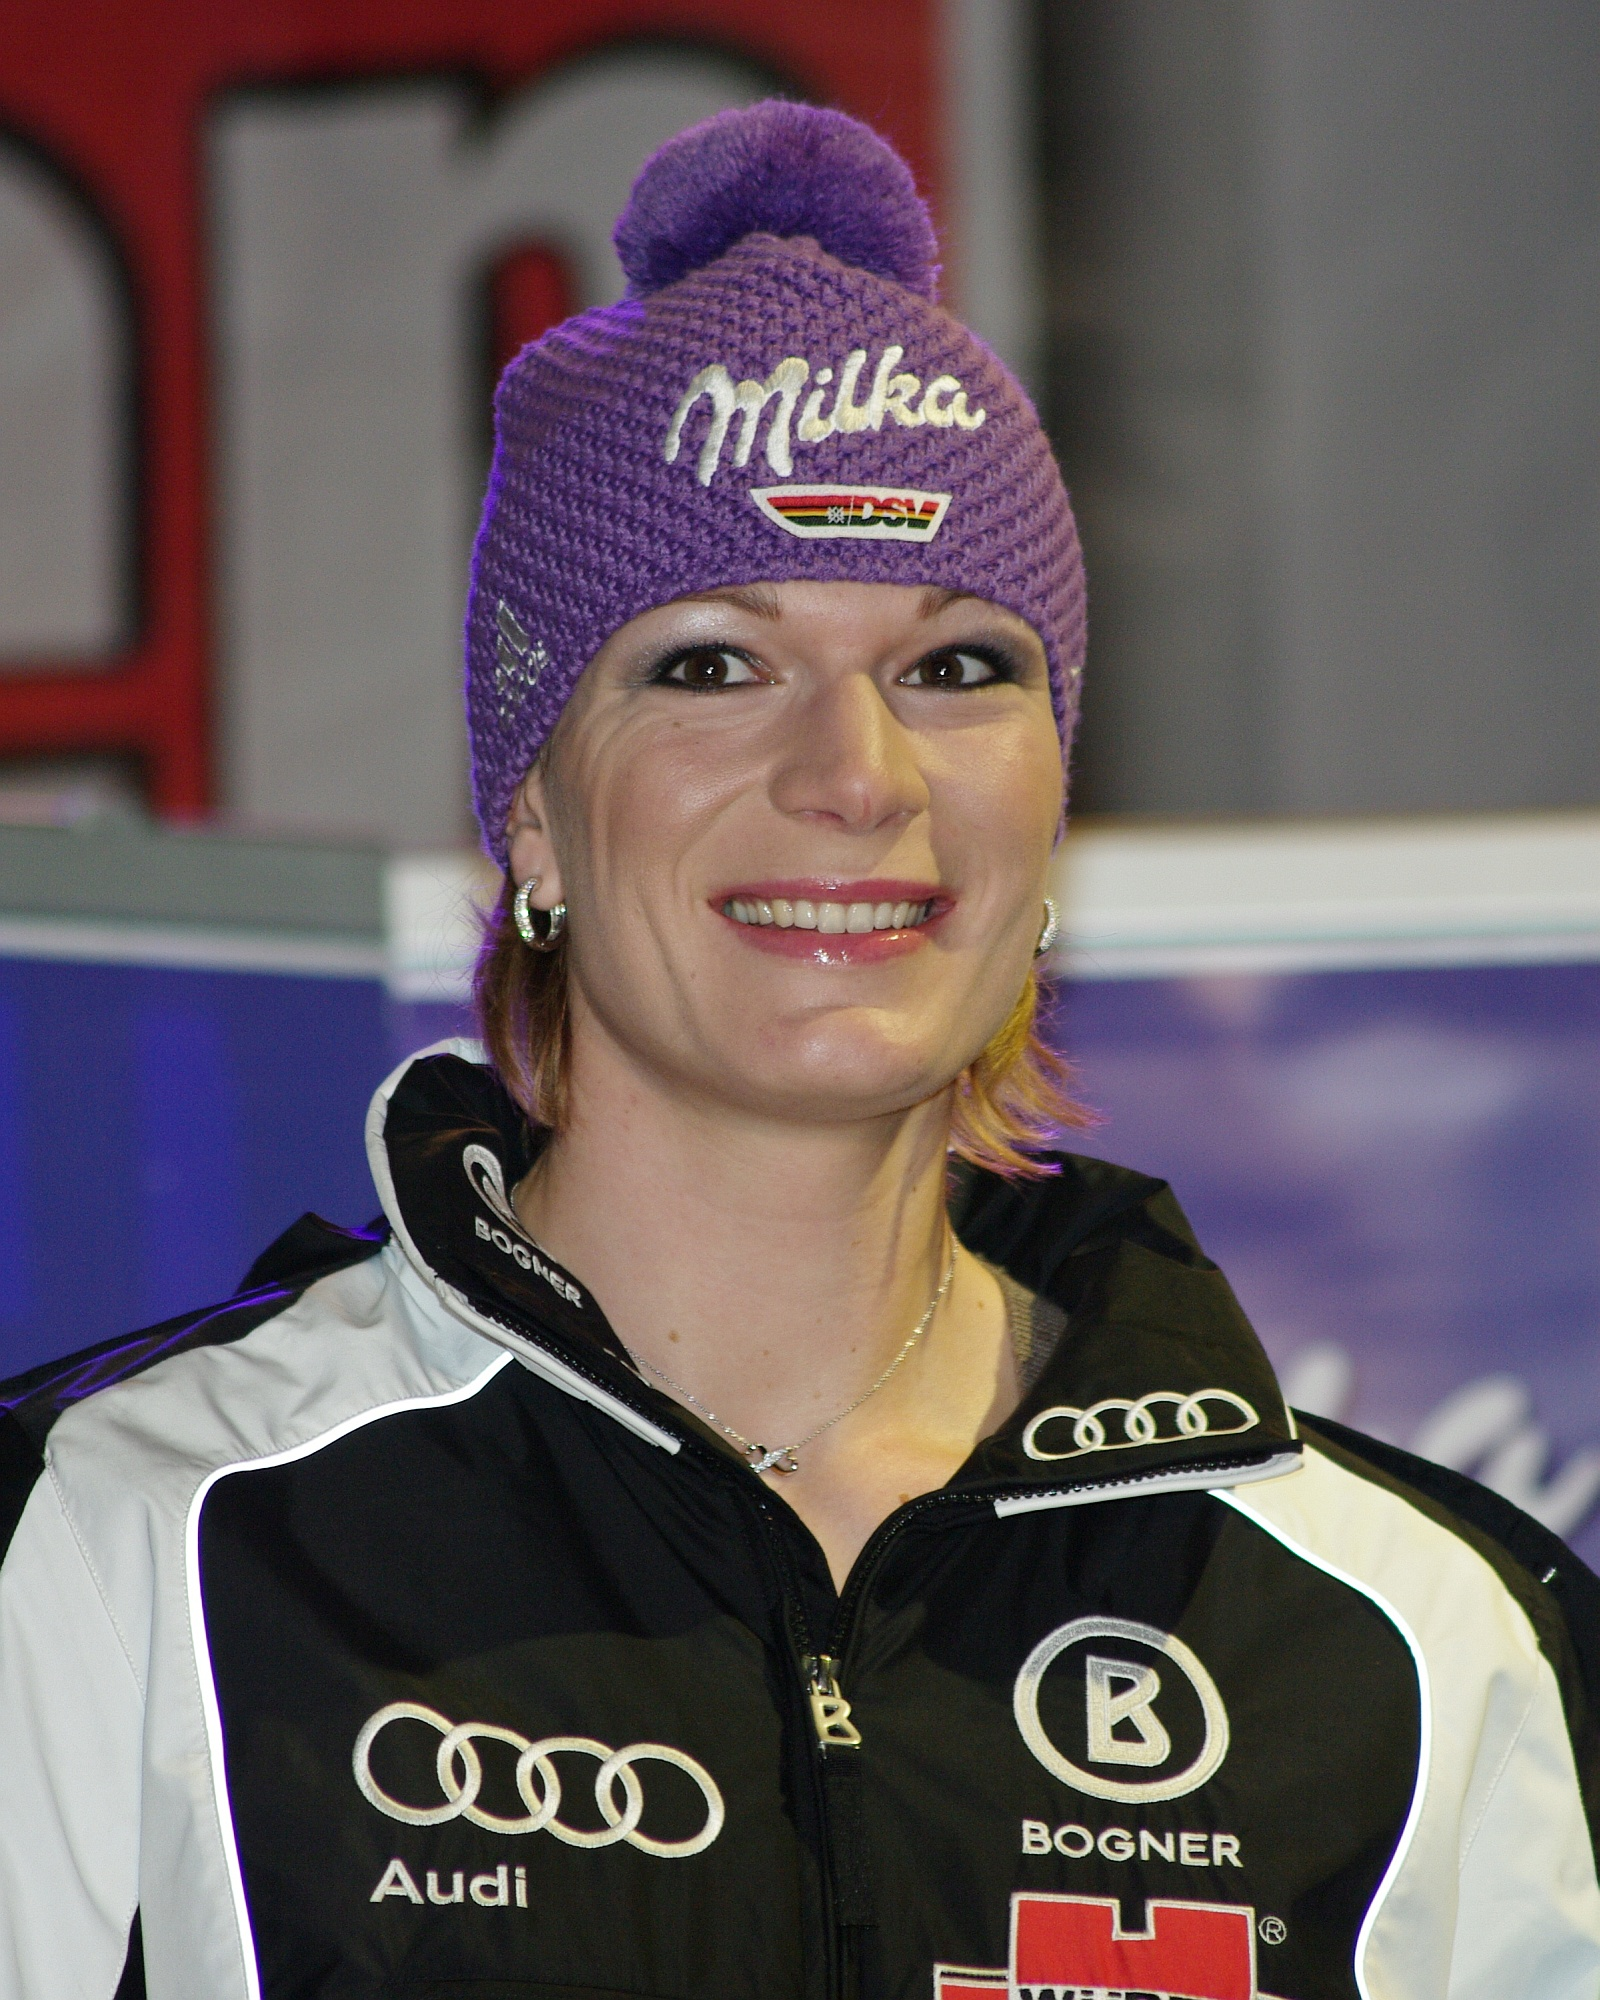 The 33-year old daughter of father Siegfried and mother Monika Maria Höfl-Riesch in 2018 photo. Maria Höfl-Riesch earned a  million dollar salary - leaving the net worth at 7 million in 2018